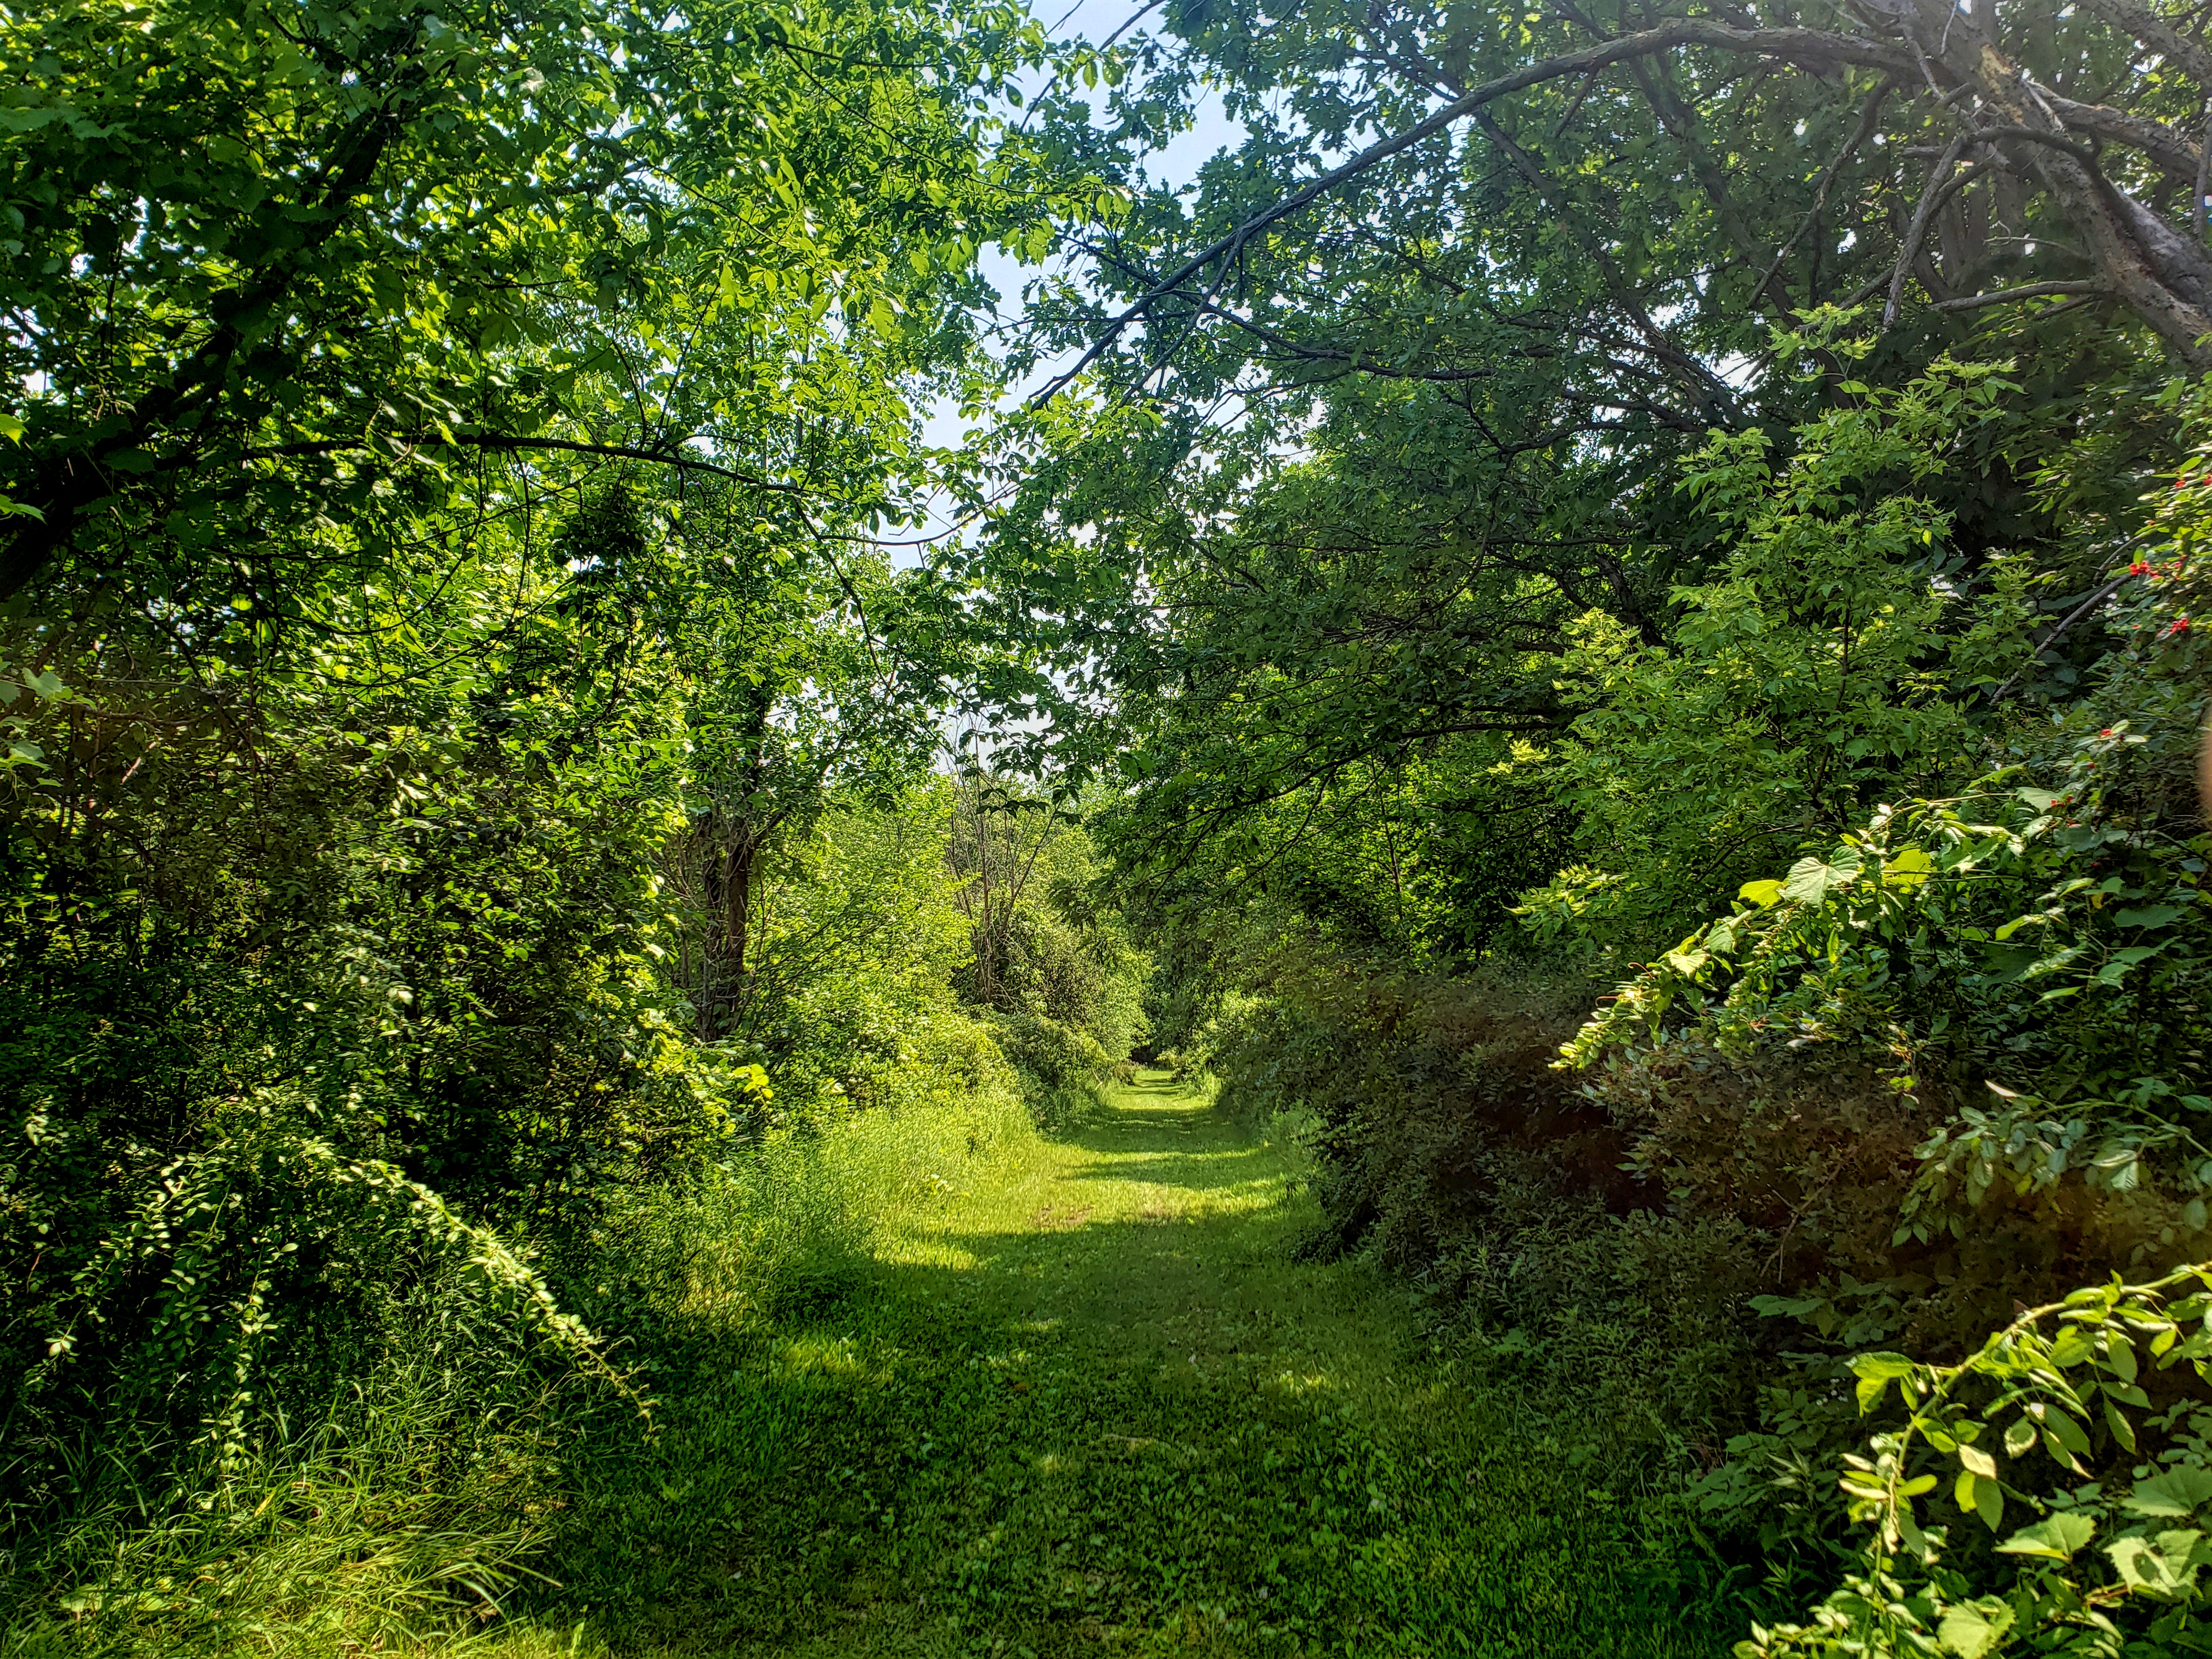 a grassy trail path leads out of a wooded area on the North Branch Trail at Wolcott Mills.